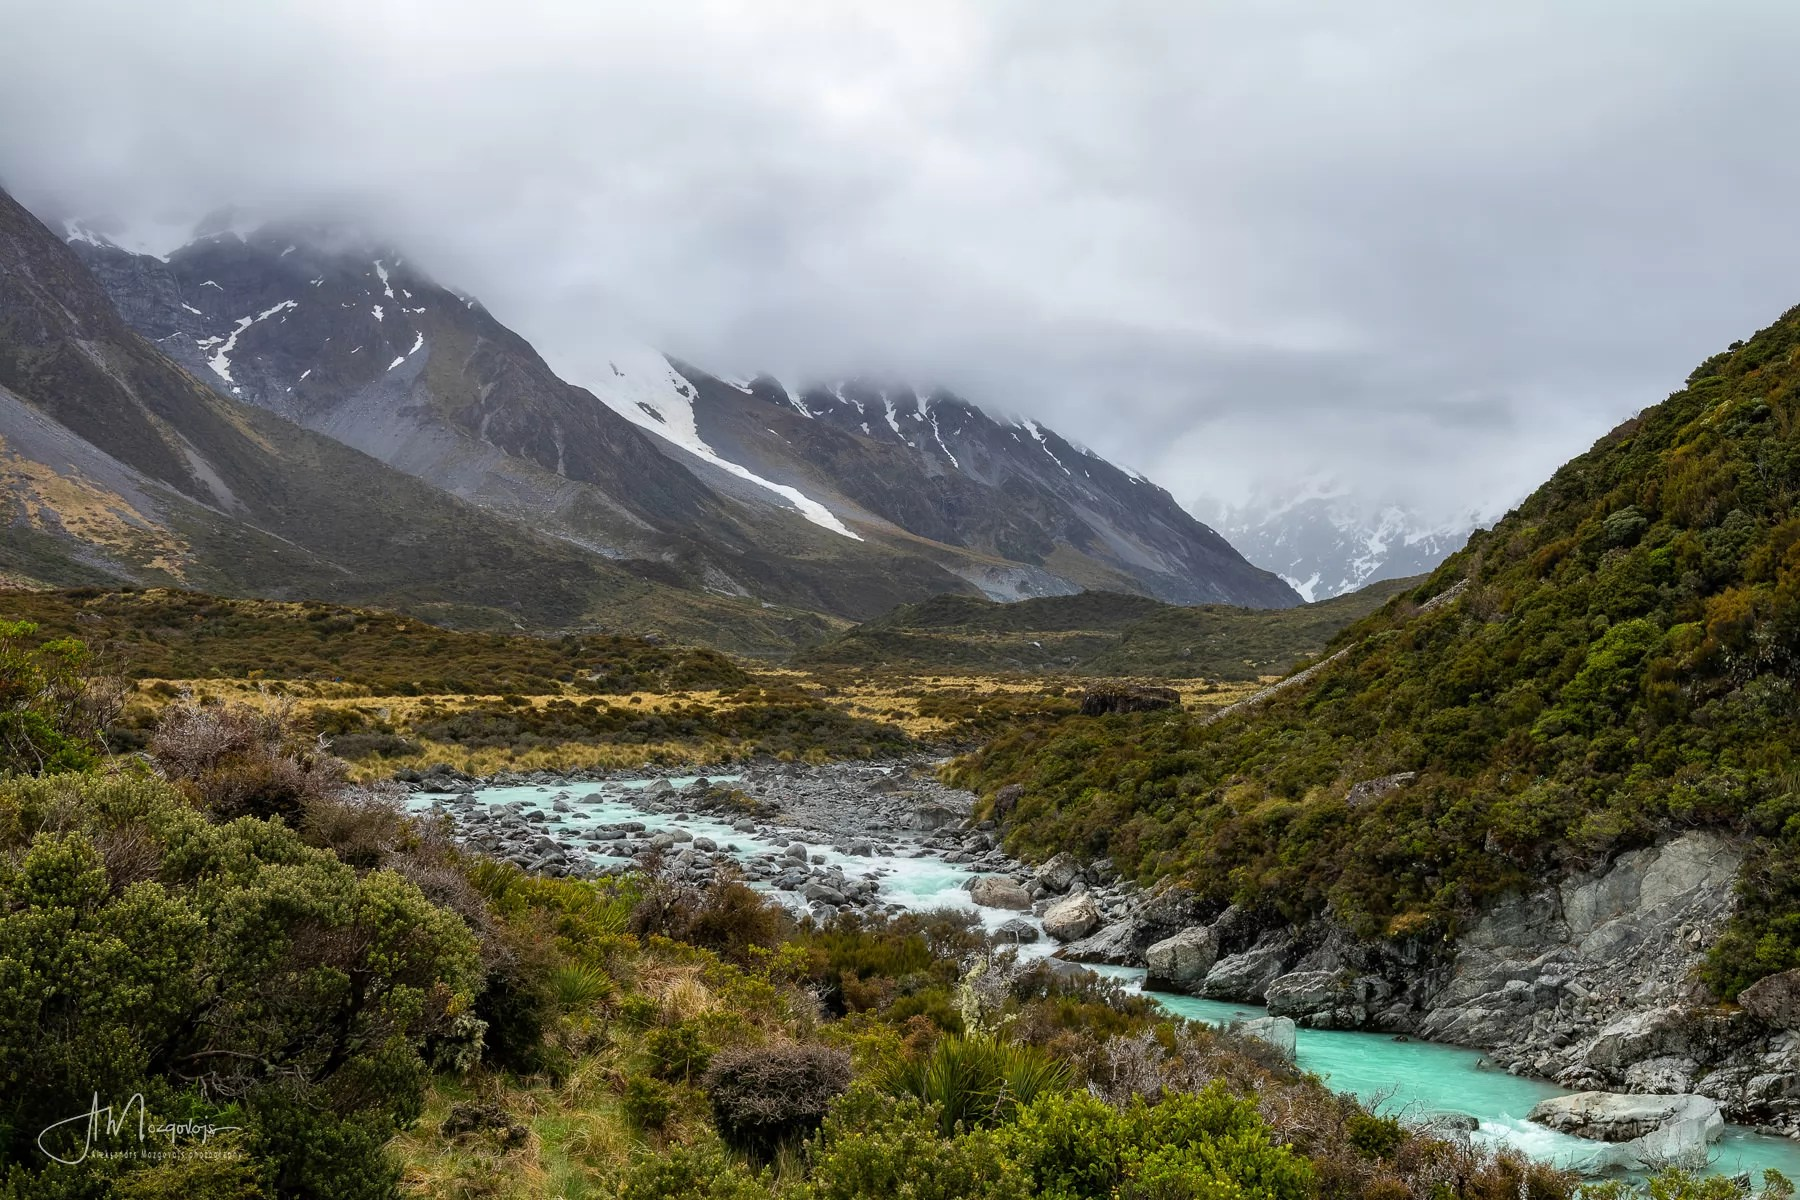 Hooker Valley Track looks a bit boring under the clouds